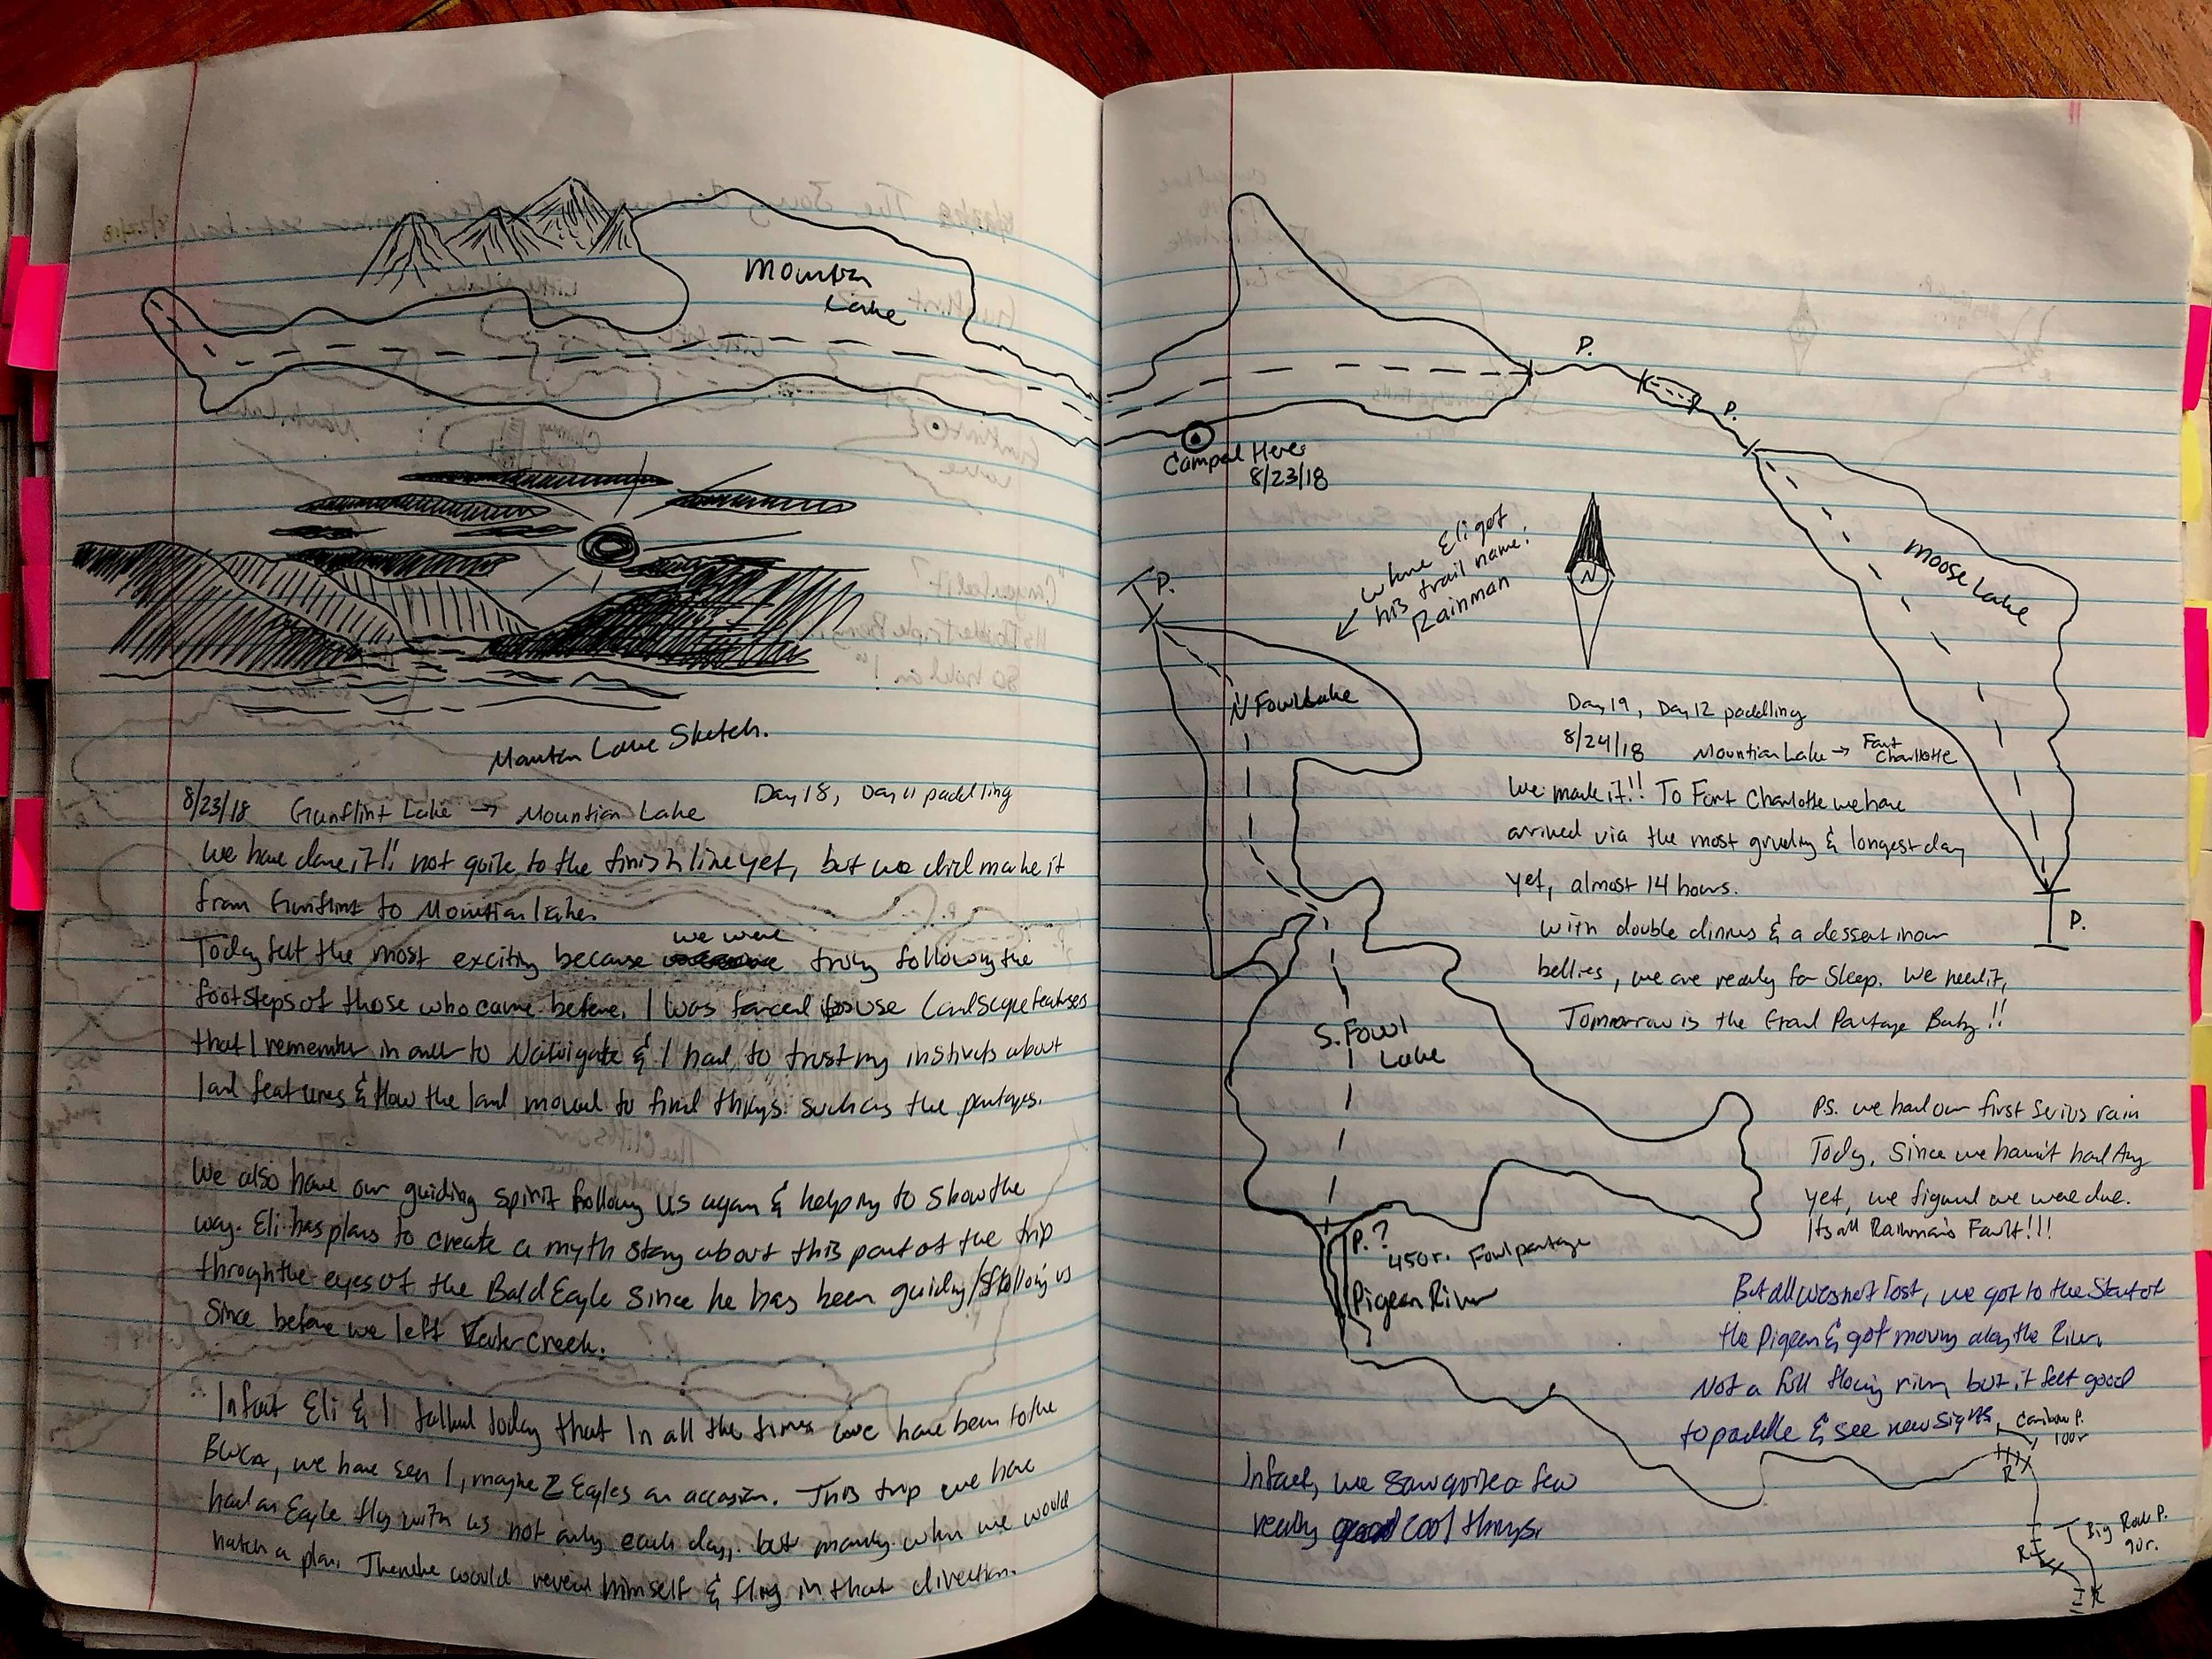 Maps sketched in Schraeder's notebook